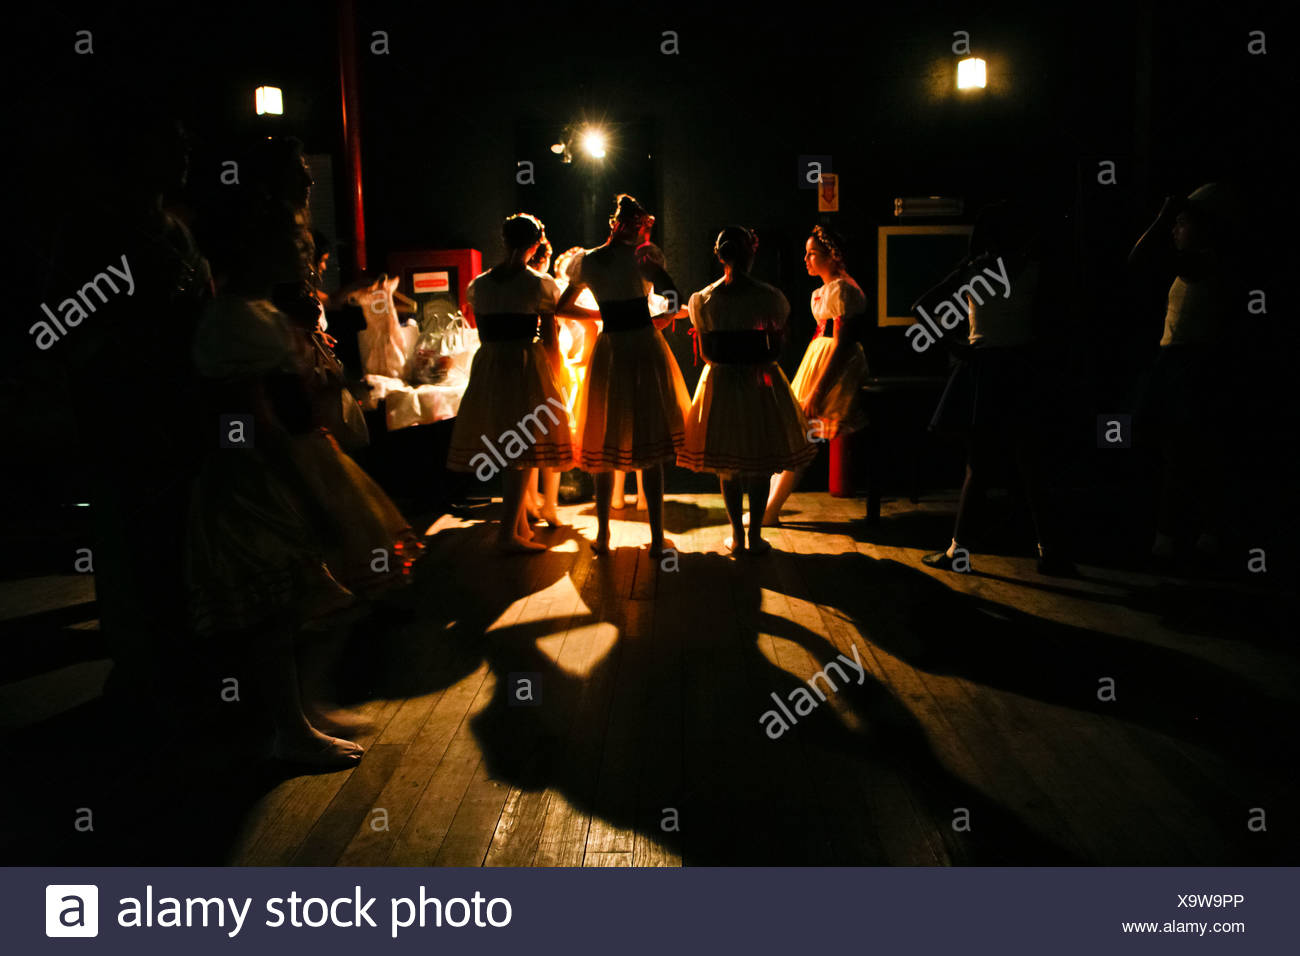 Behind the scenes. Ballet dancers before performance talk at theater dressing-room. - Stock Image